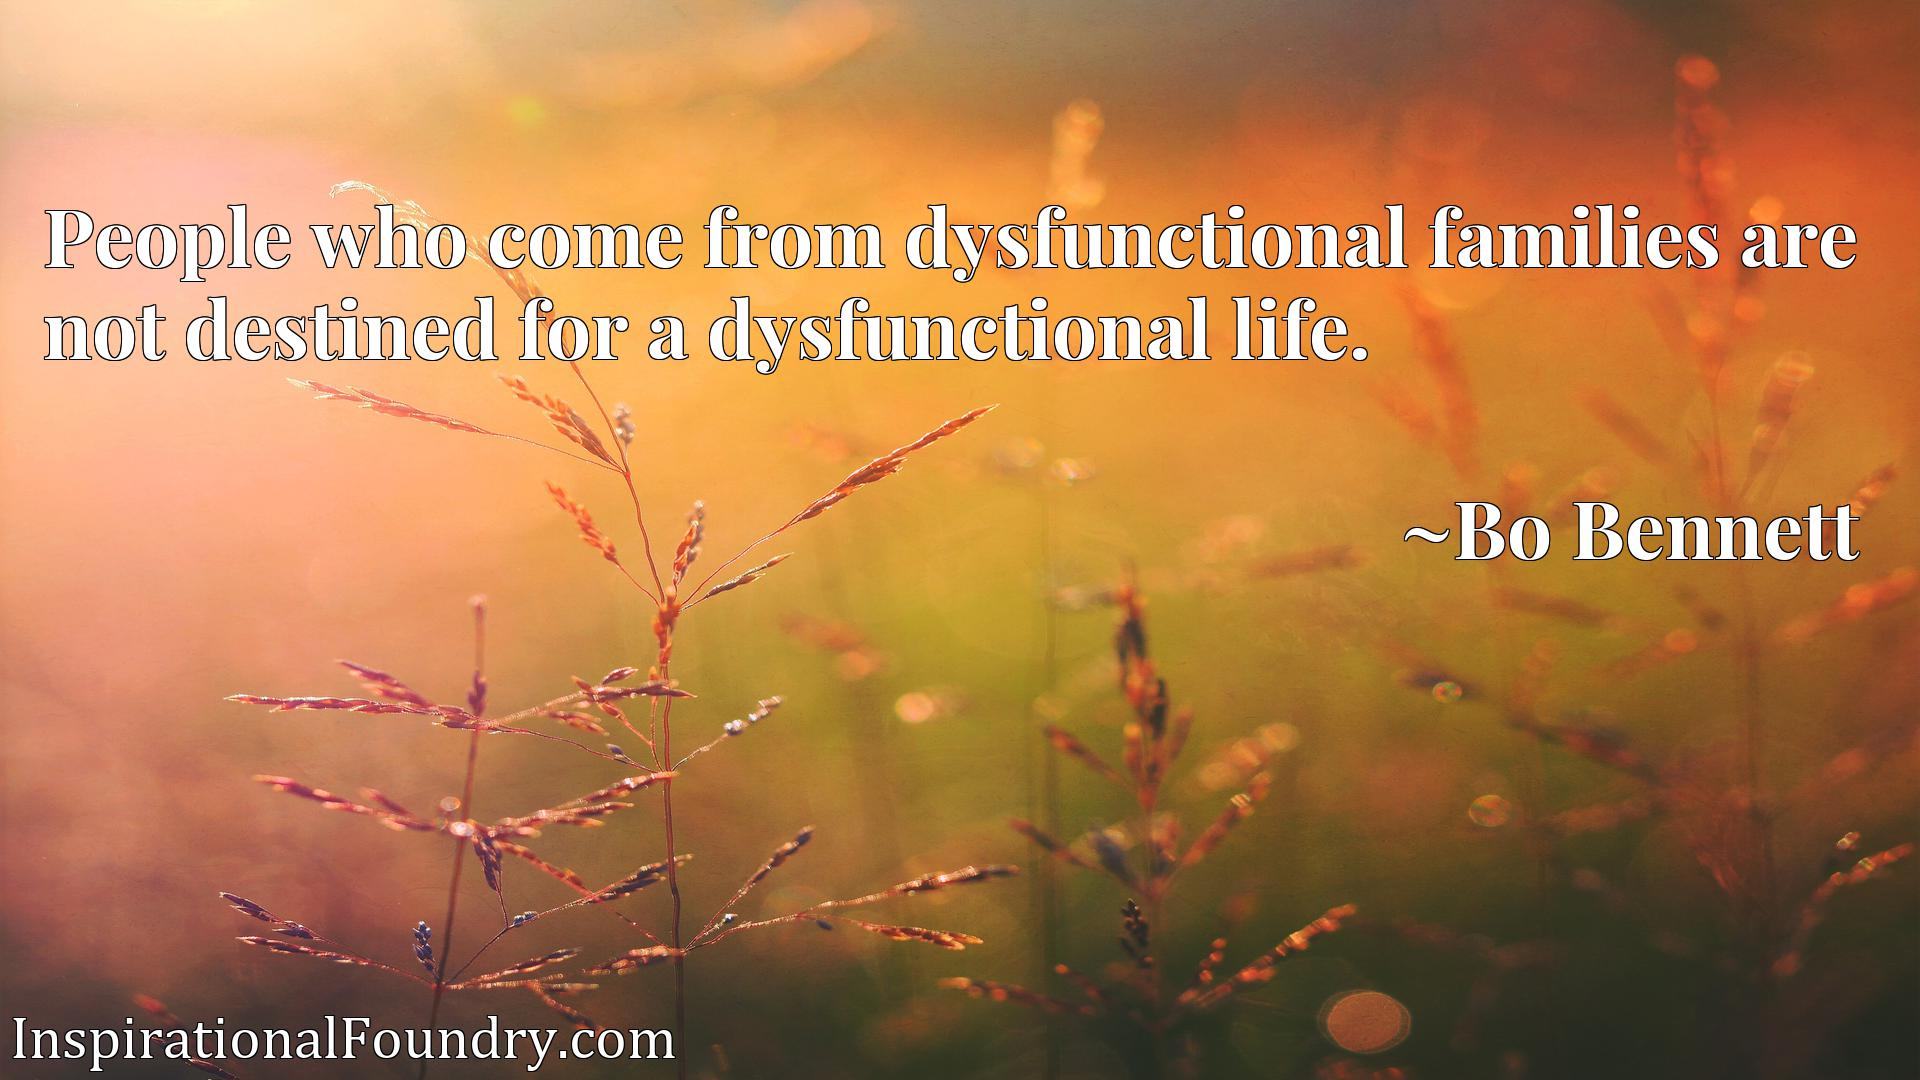 People who come from dysfunctional families are not destined for a dysfunctional life.